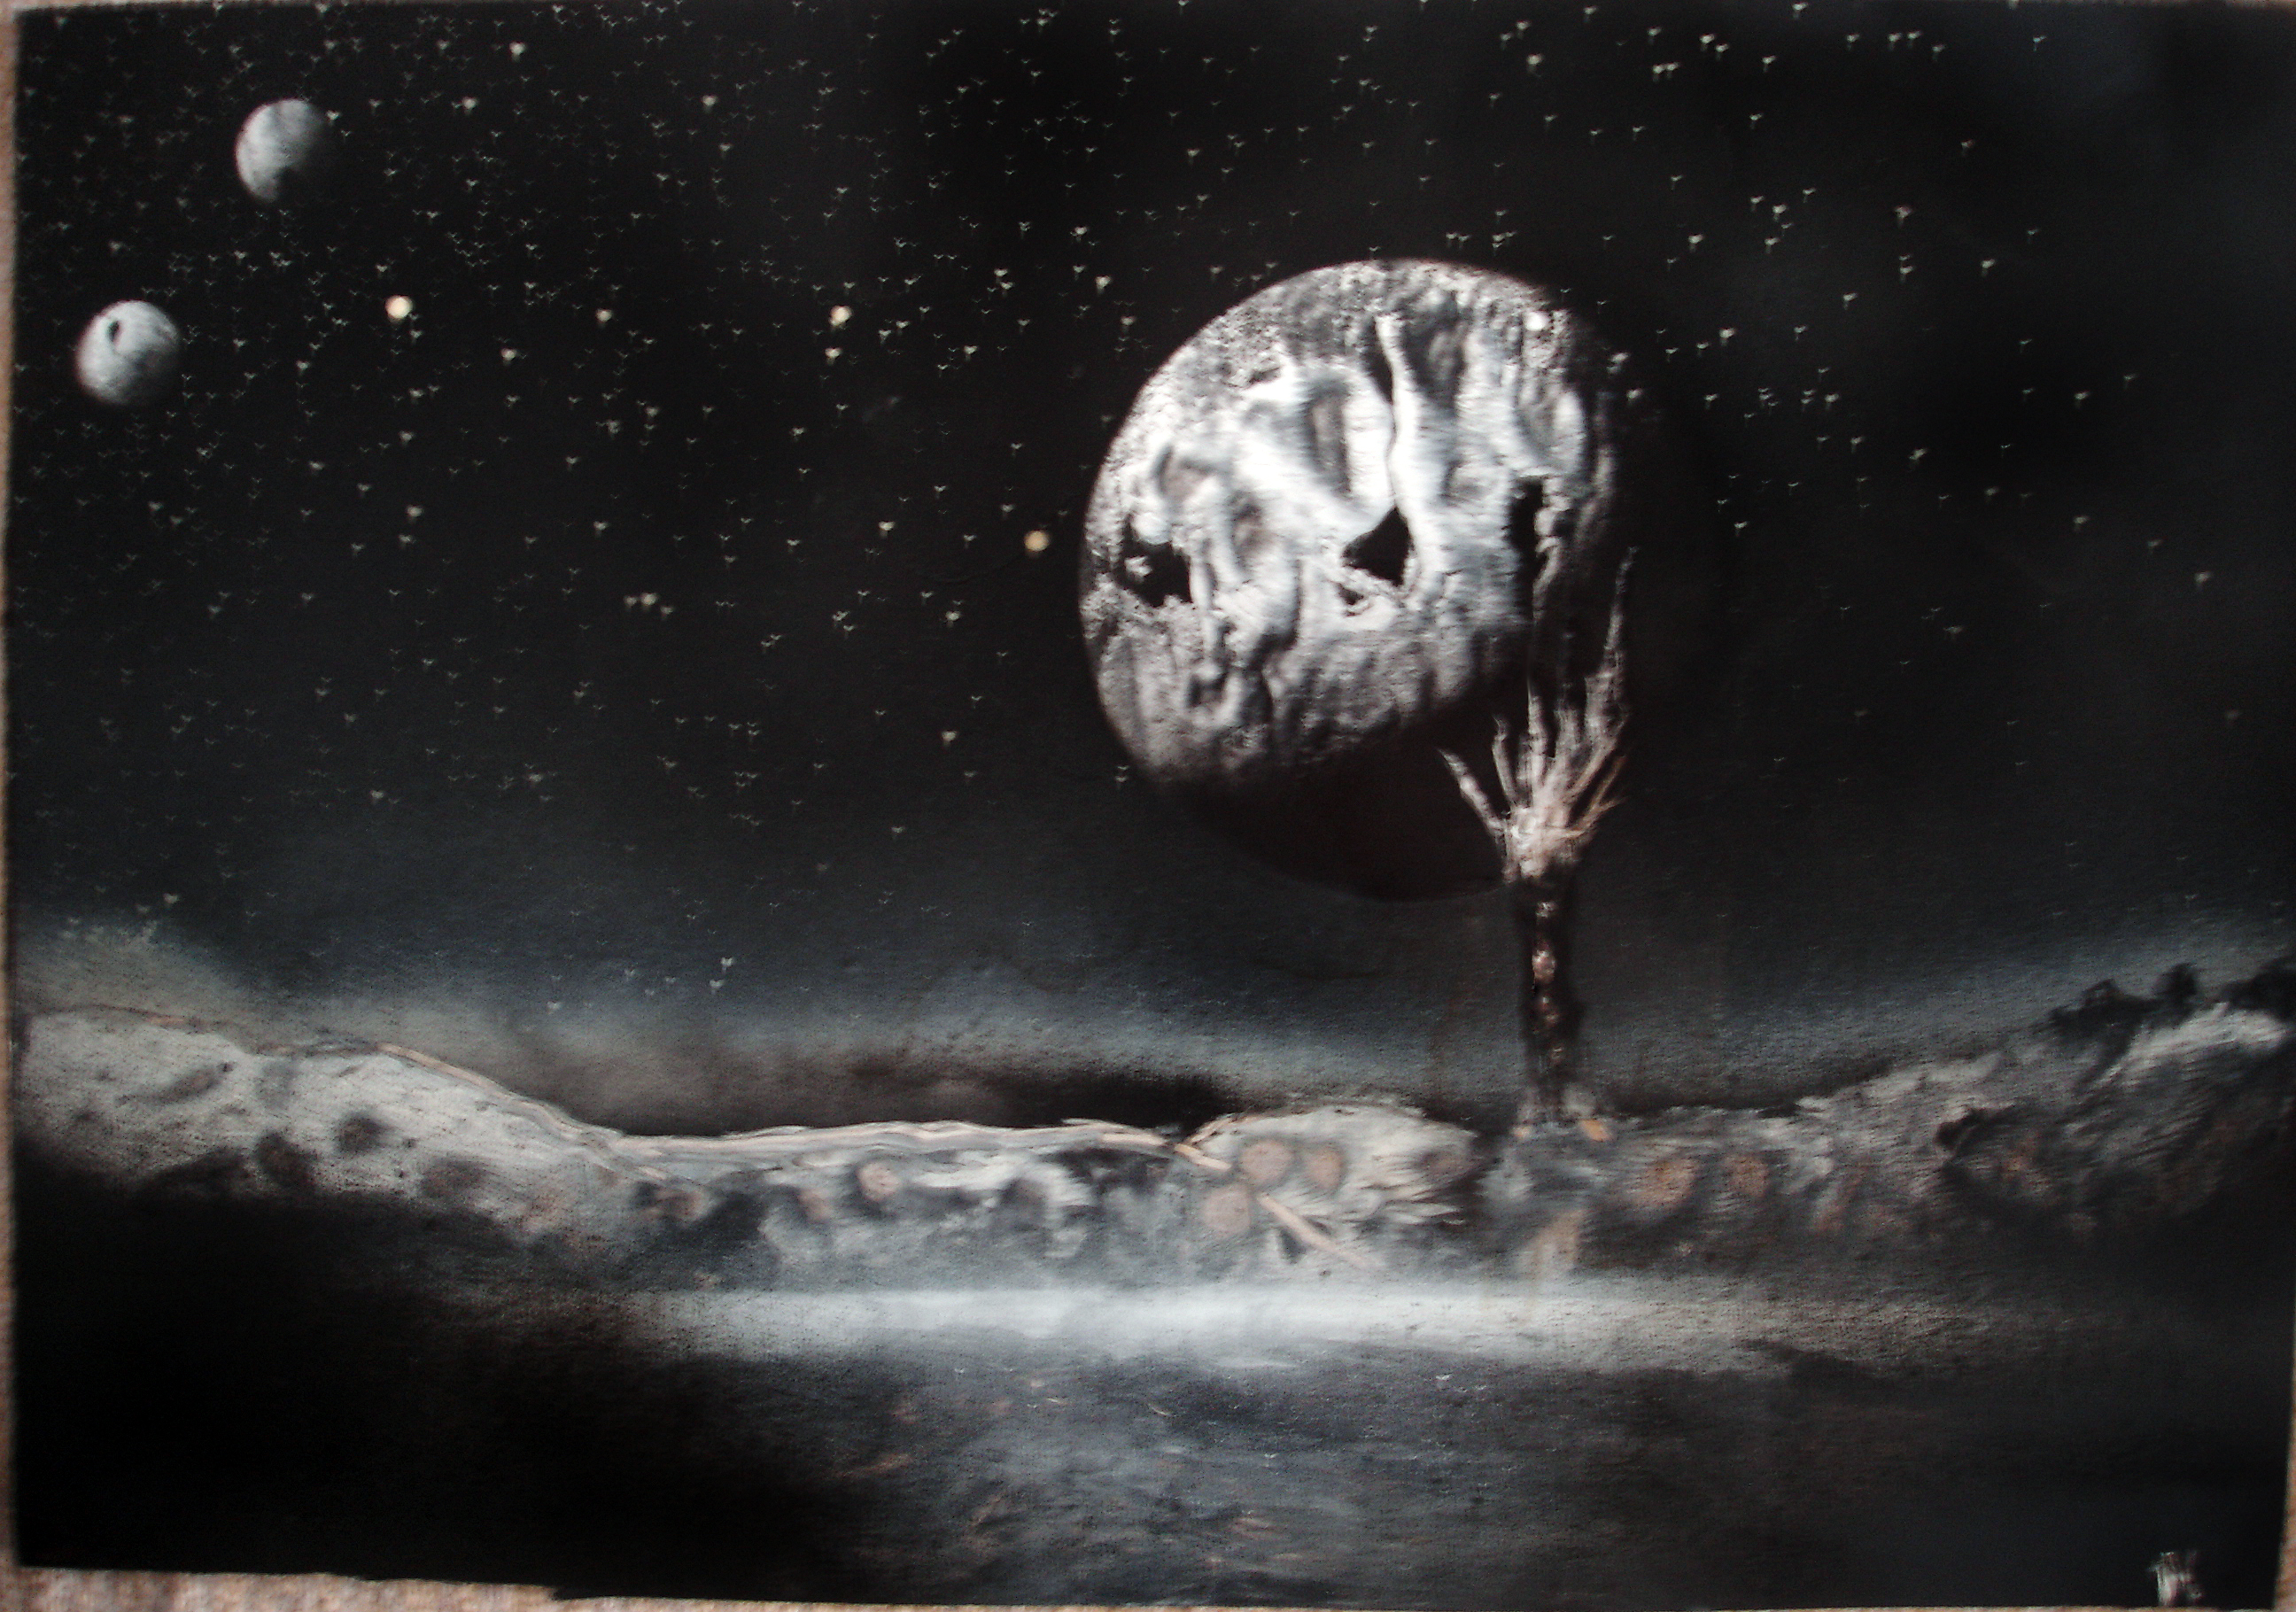 Black And White Space Painting By Nikos92 On Deviantart